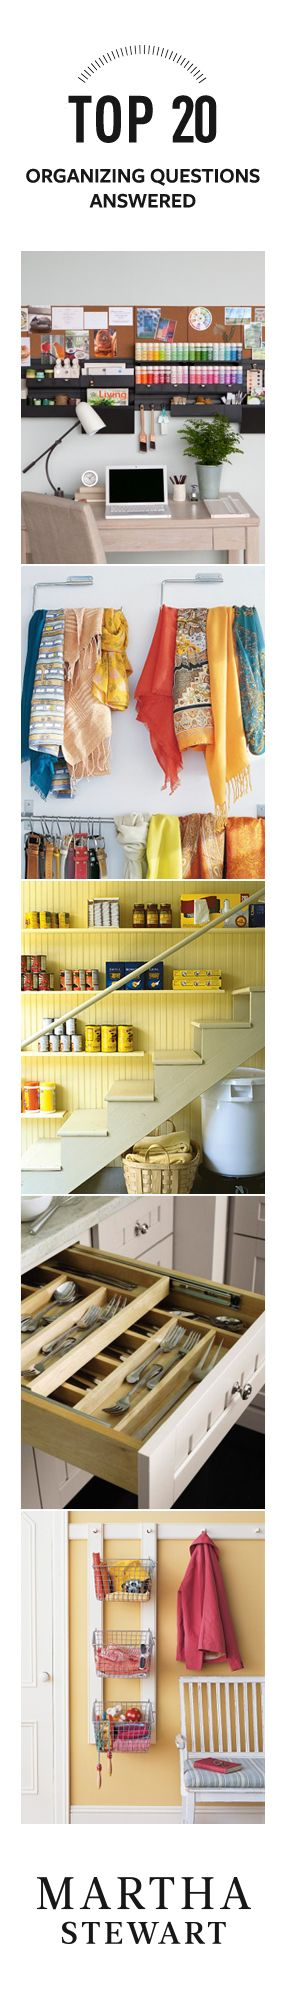 Your Top 20 Organizing Questions Answers